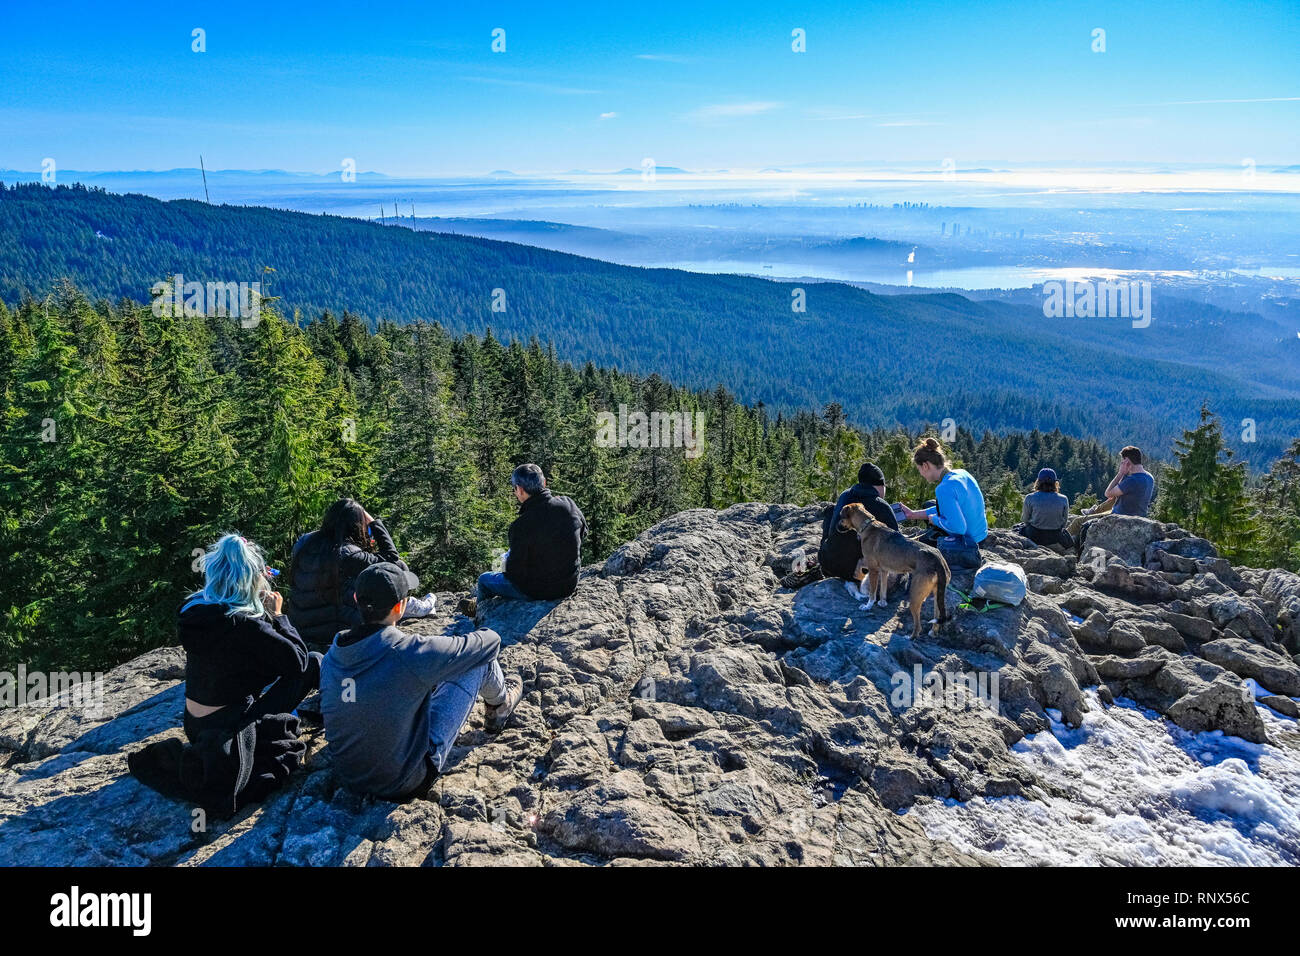 The first one can lead you up to dog mountain, whereas the second longer trail takes you on a path to mount seymour to two different viewpoints:. Hikers Relaxing At Dog Mountain Lookout Mount Seymour Provincial Park North Vancouver British Columbia Canada Stock Photo Alamy